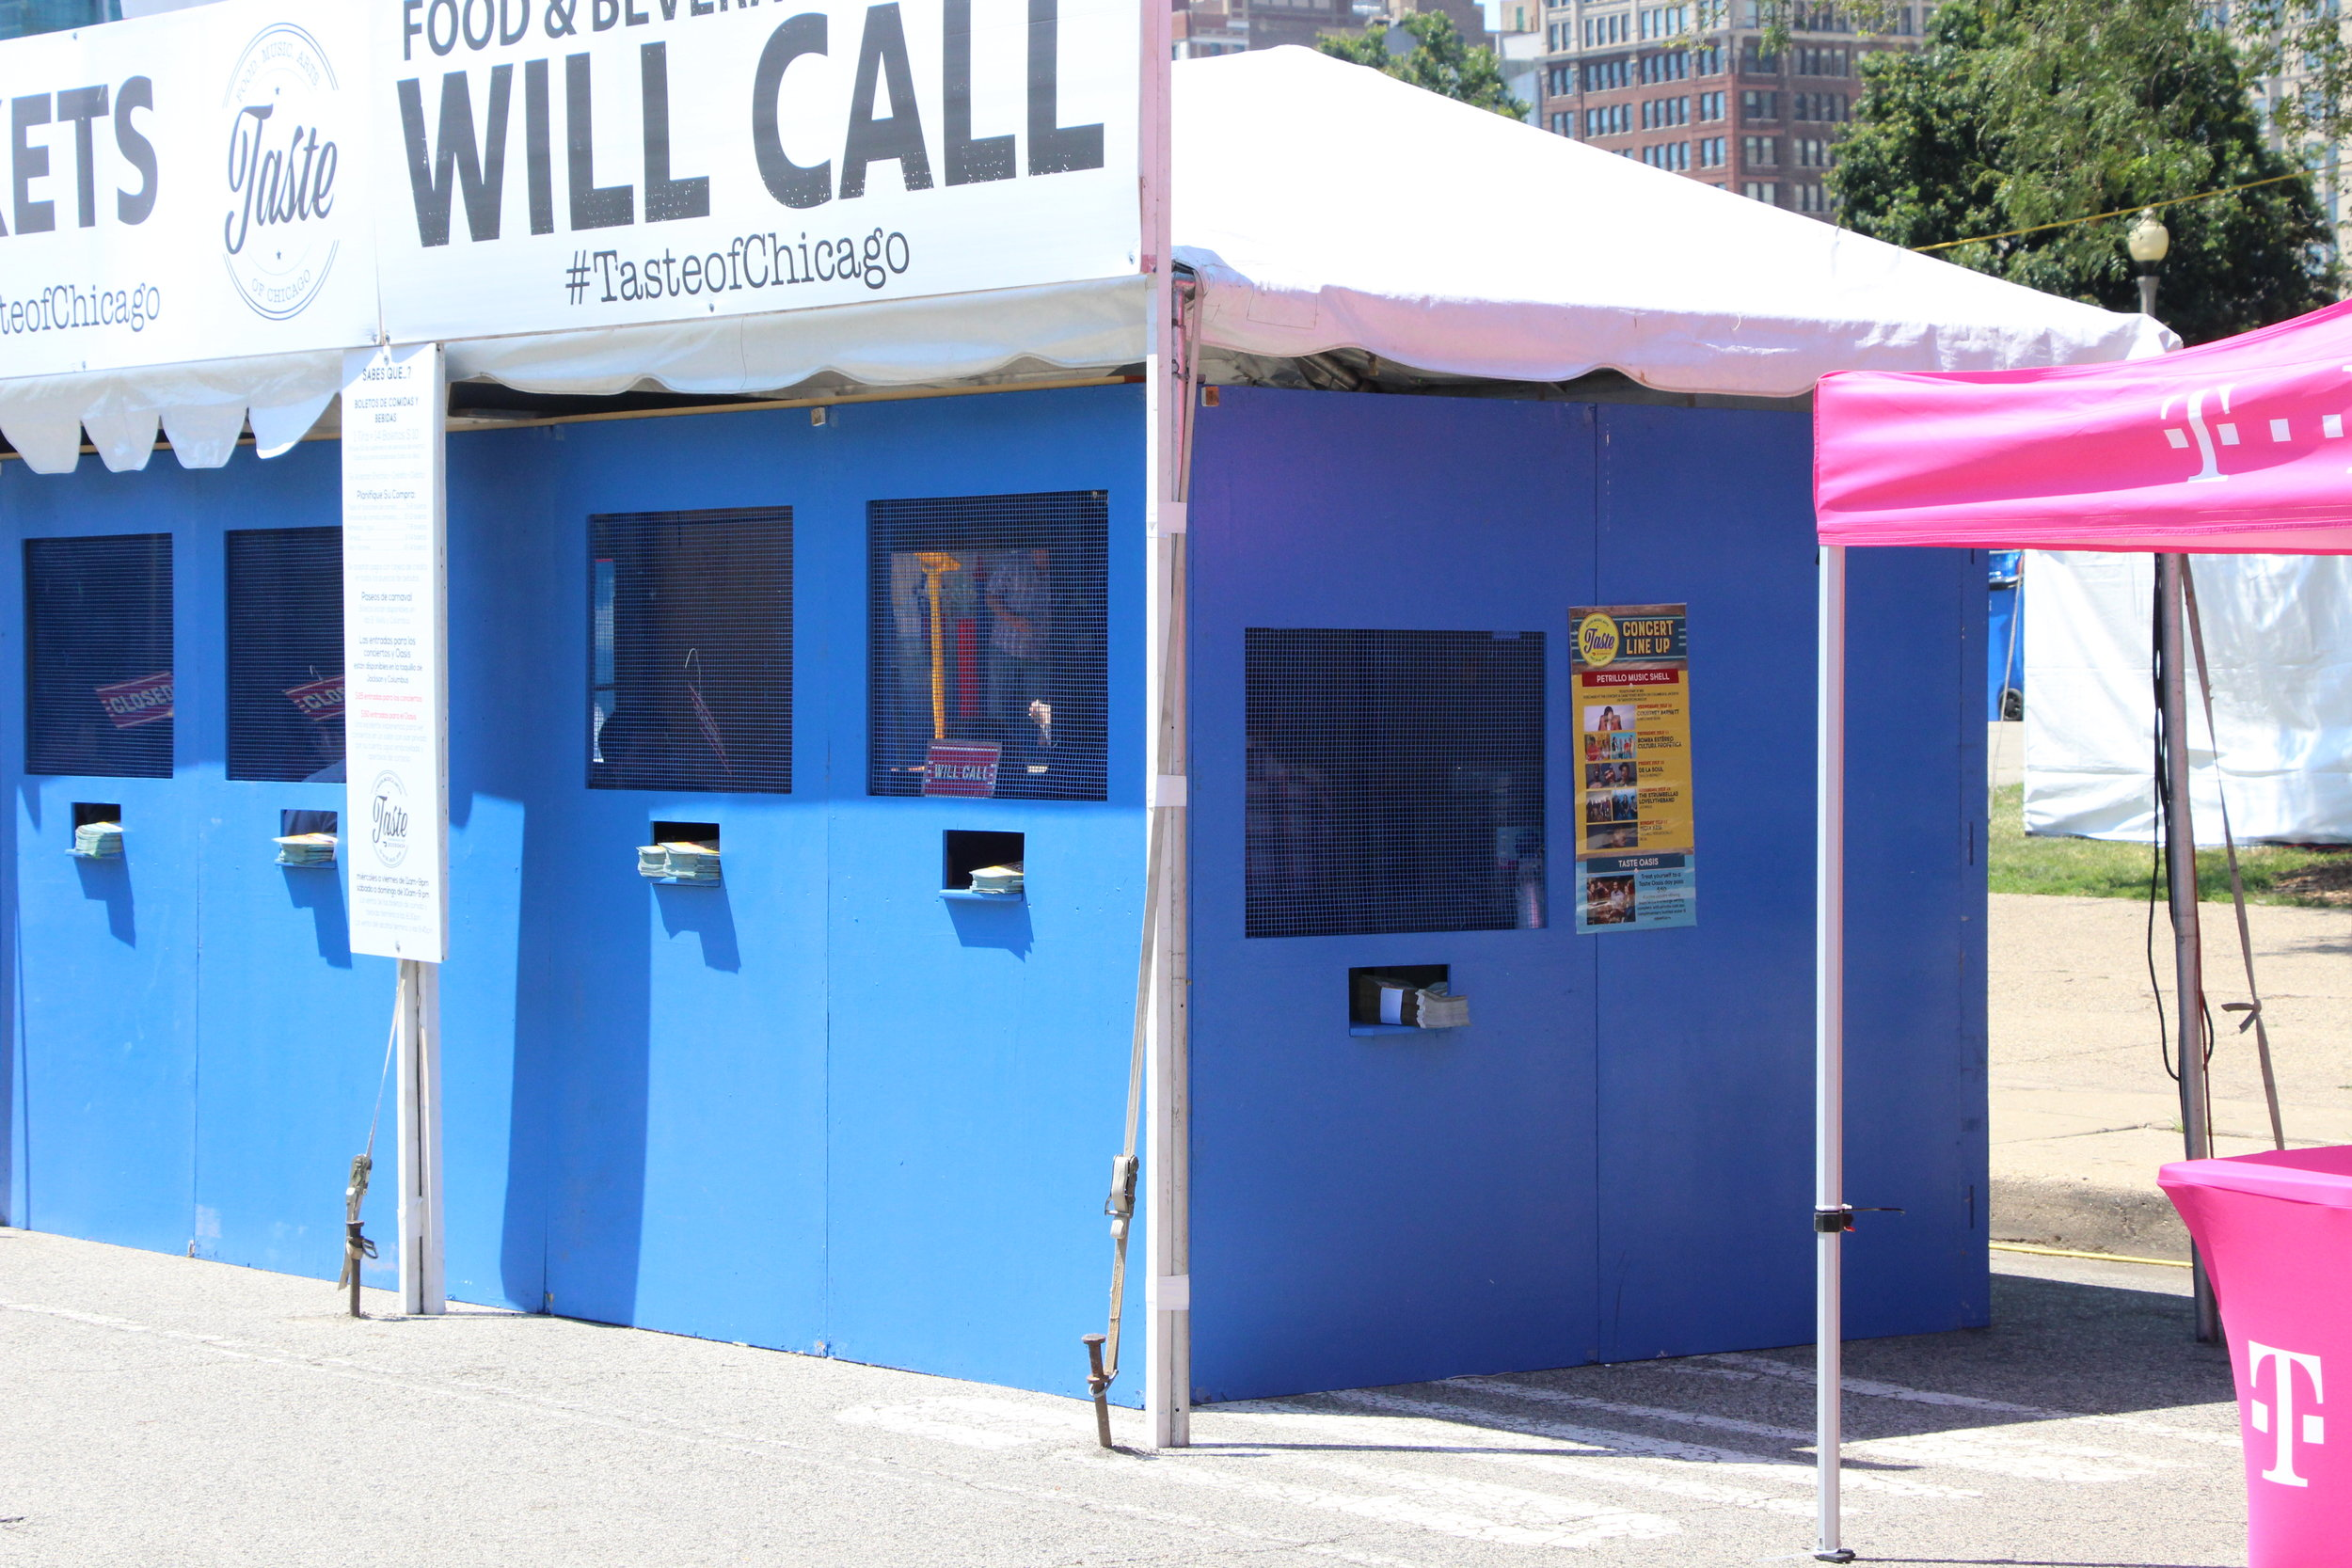 Booths like these had wheelchair accessible windows to purchase food and beverage tickets at the Taste of Chicago. Photo by Jerome Sanders